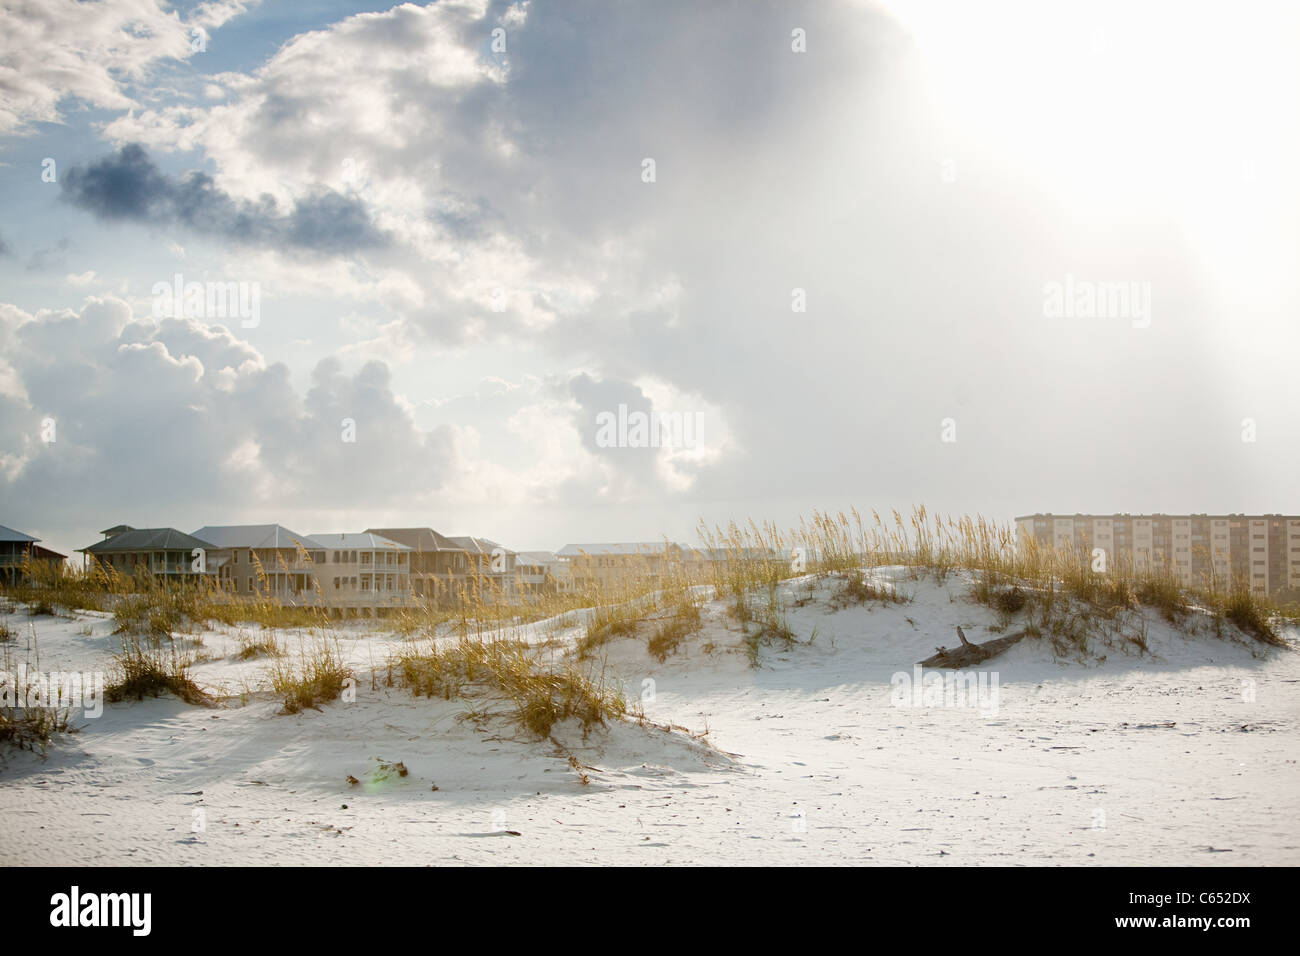 Sand dunes and apartments - Stock Image